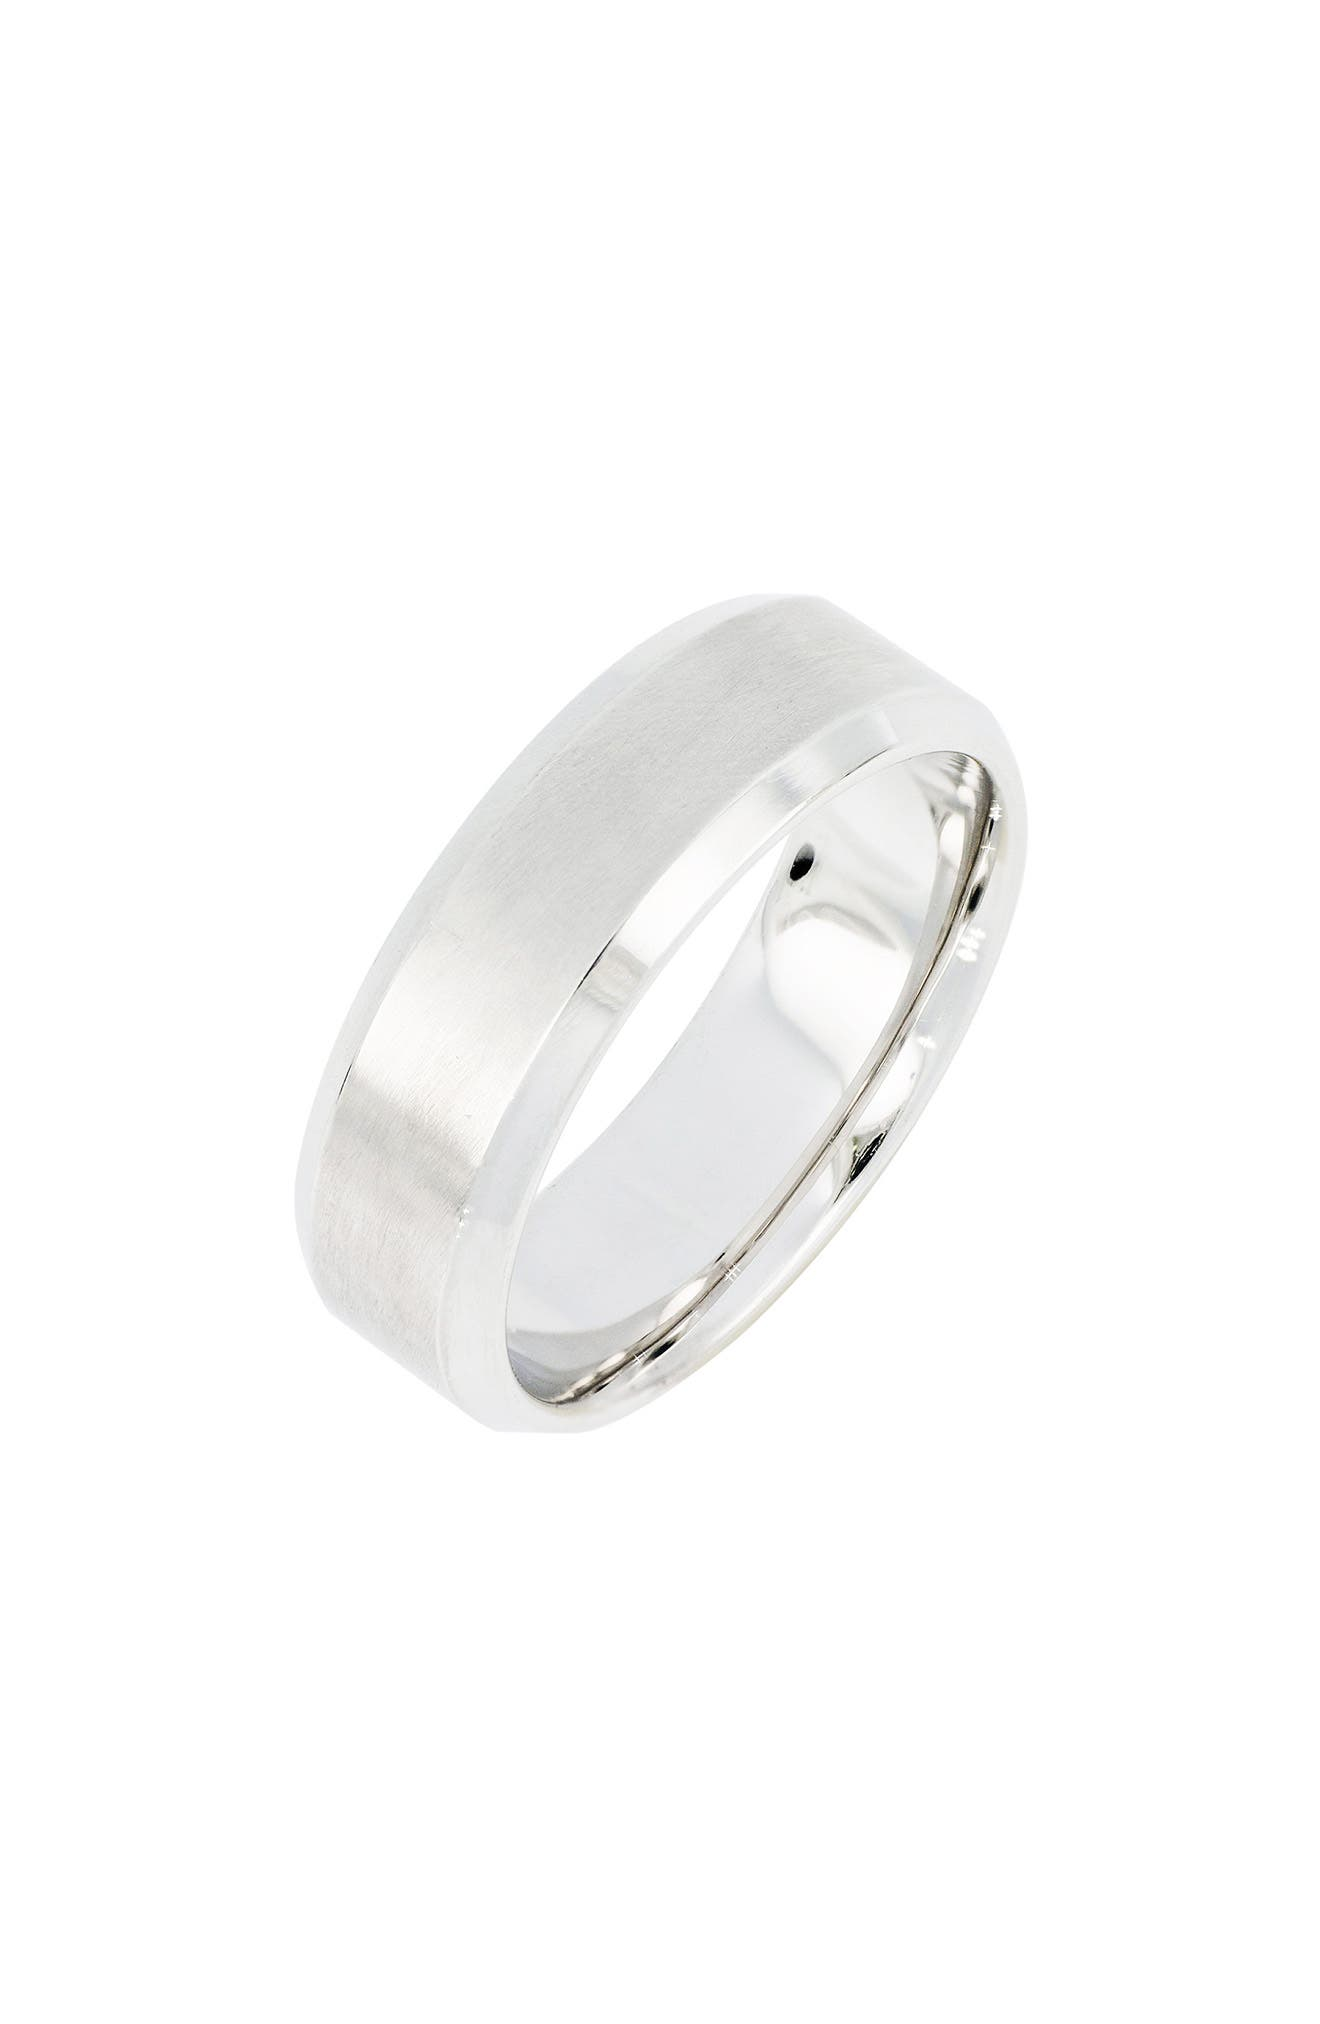 Beveled Ring,                         Main,                         color, WHITE GOLD